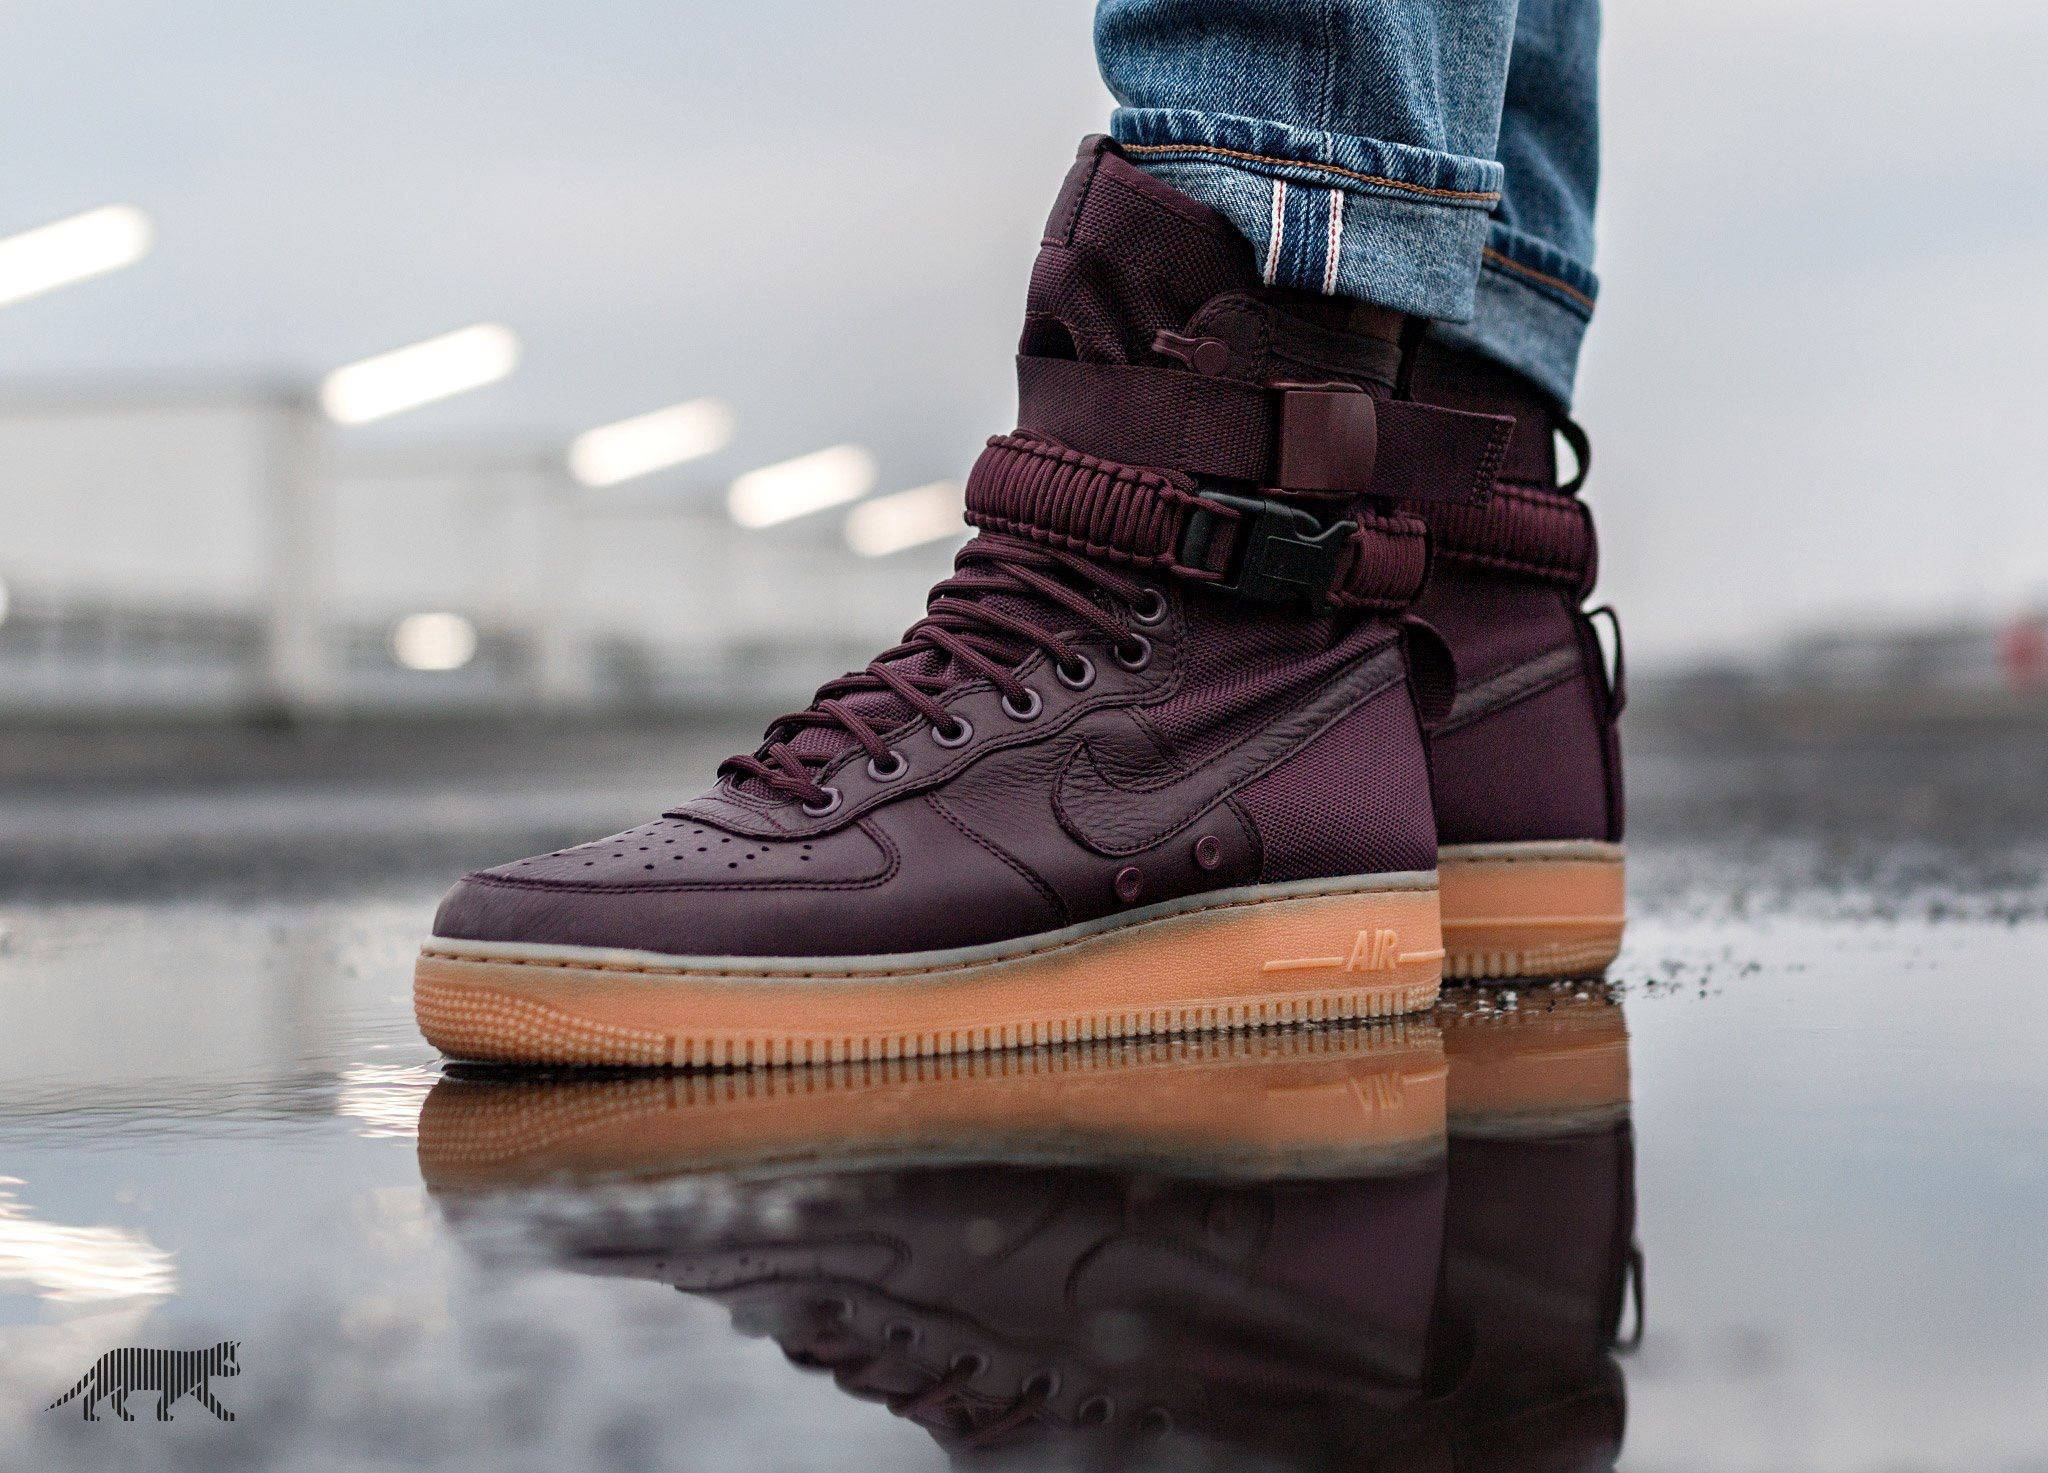 Nike Sf Air Force 1 Mid Sneaker Boots Kicks Shoes Sneakers Fashion